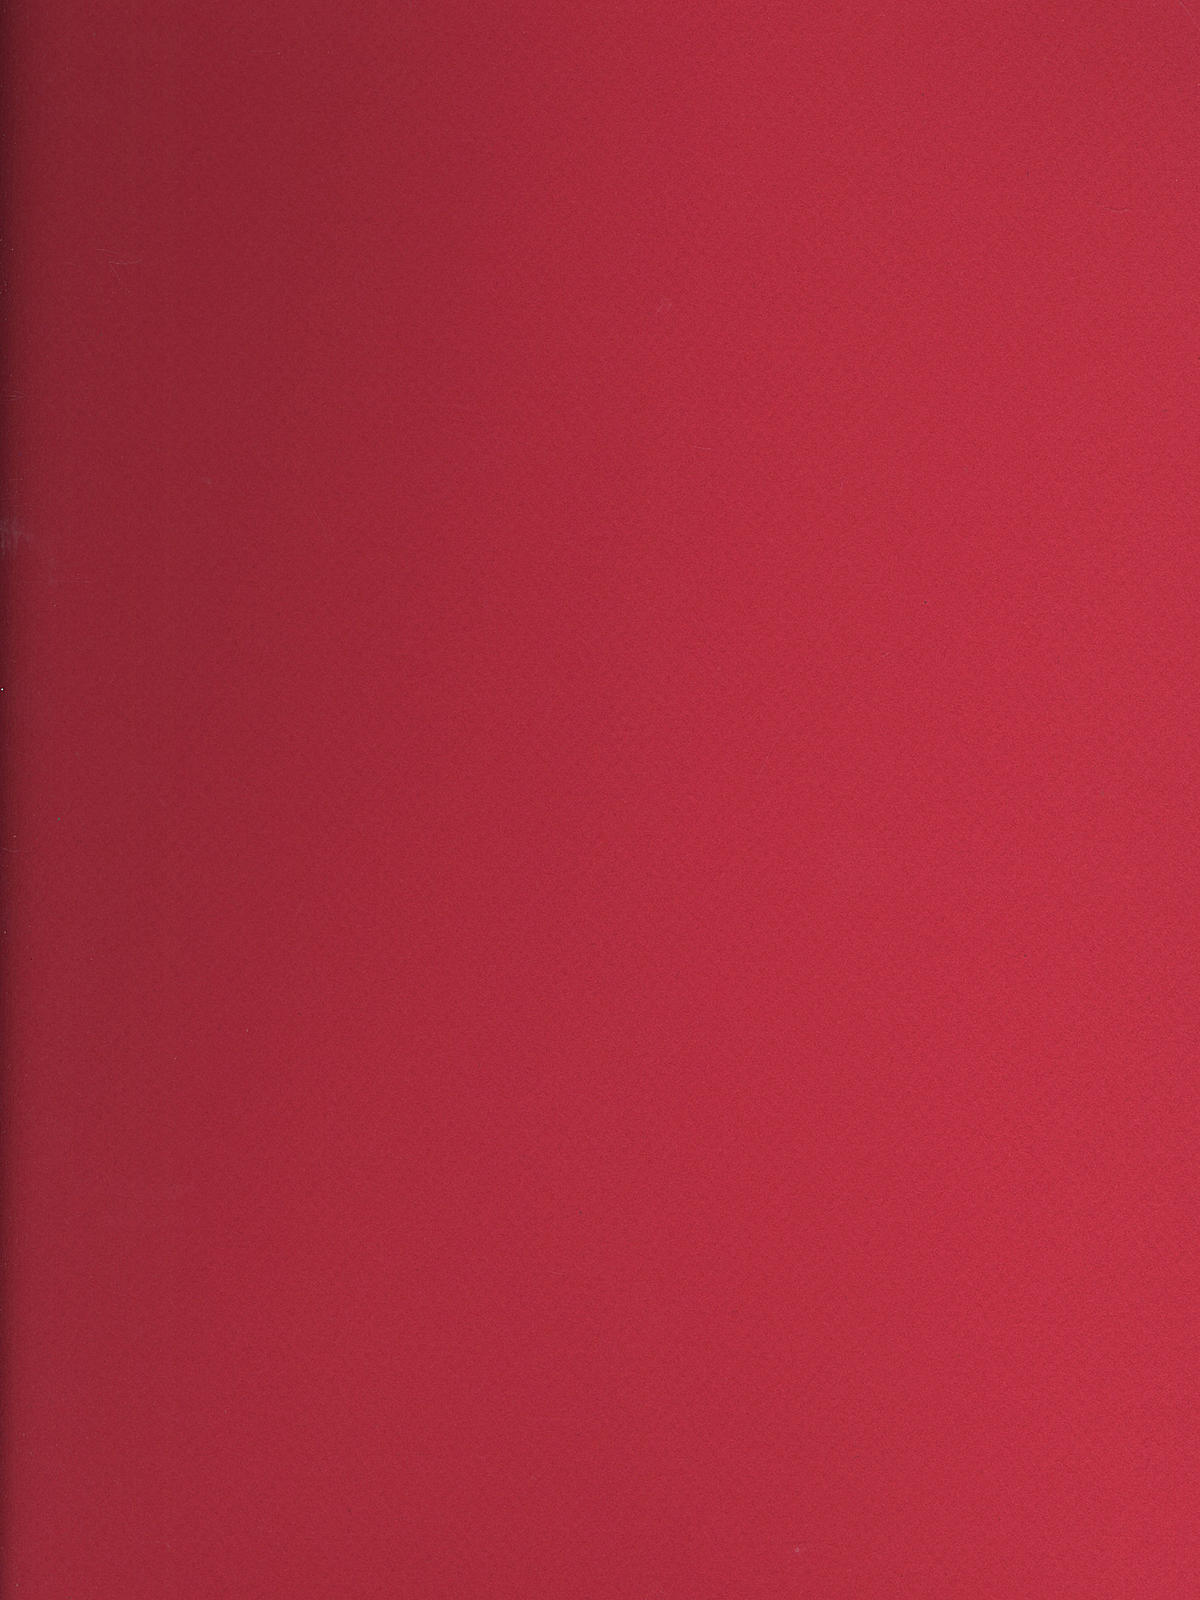 Mi-teintes Tinted Paper Red 19 In. X 25 In.